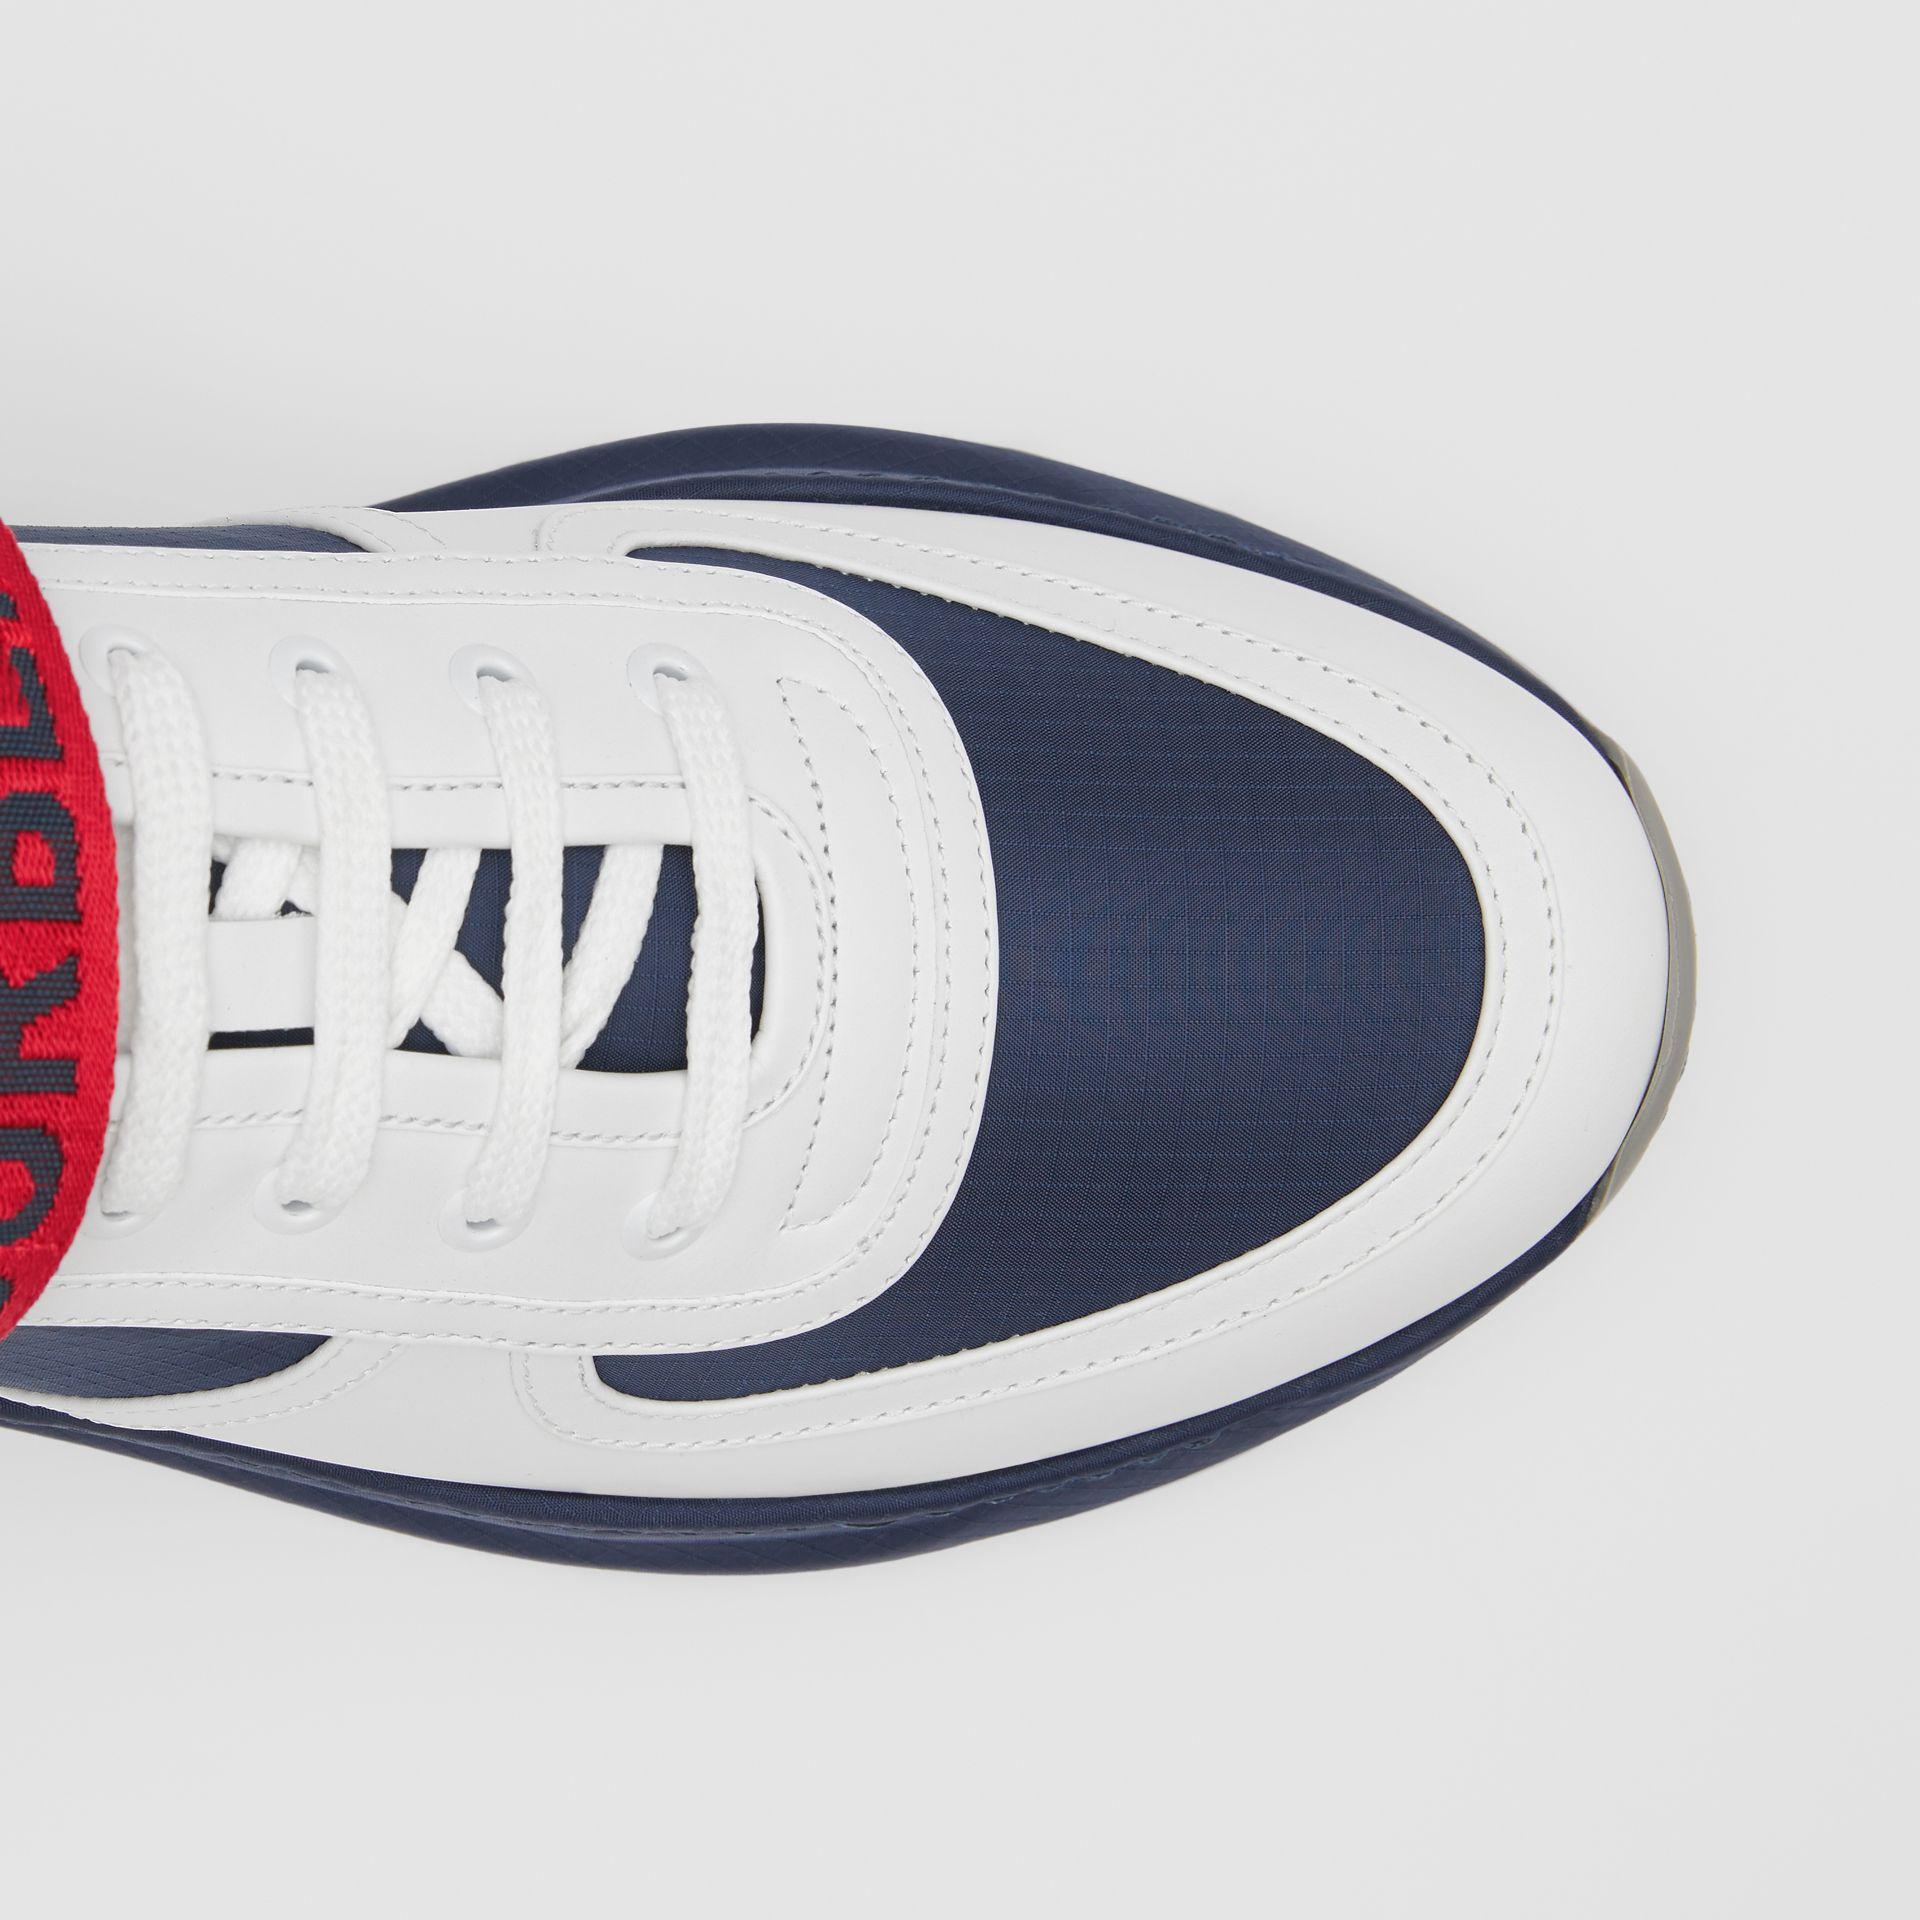 Logo Detail Leather and Suede Sneakers in Navy - Men | Burberry Canada - gallery image 1